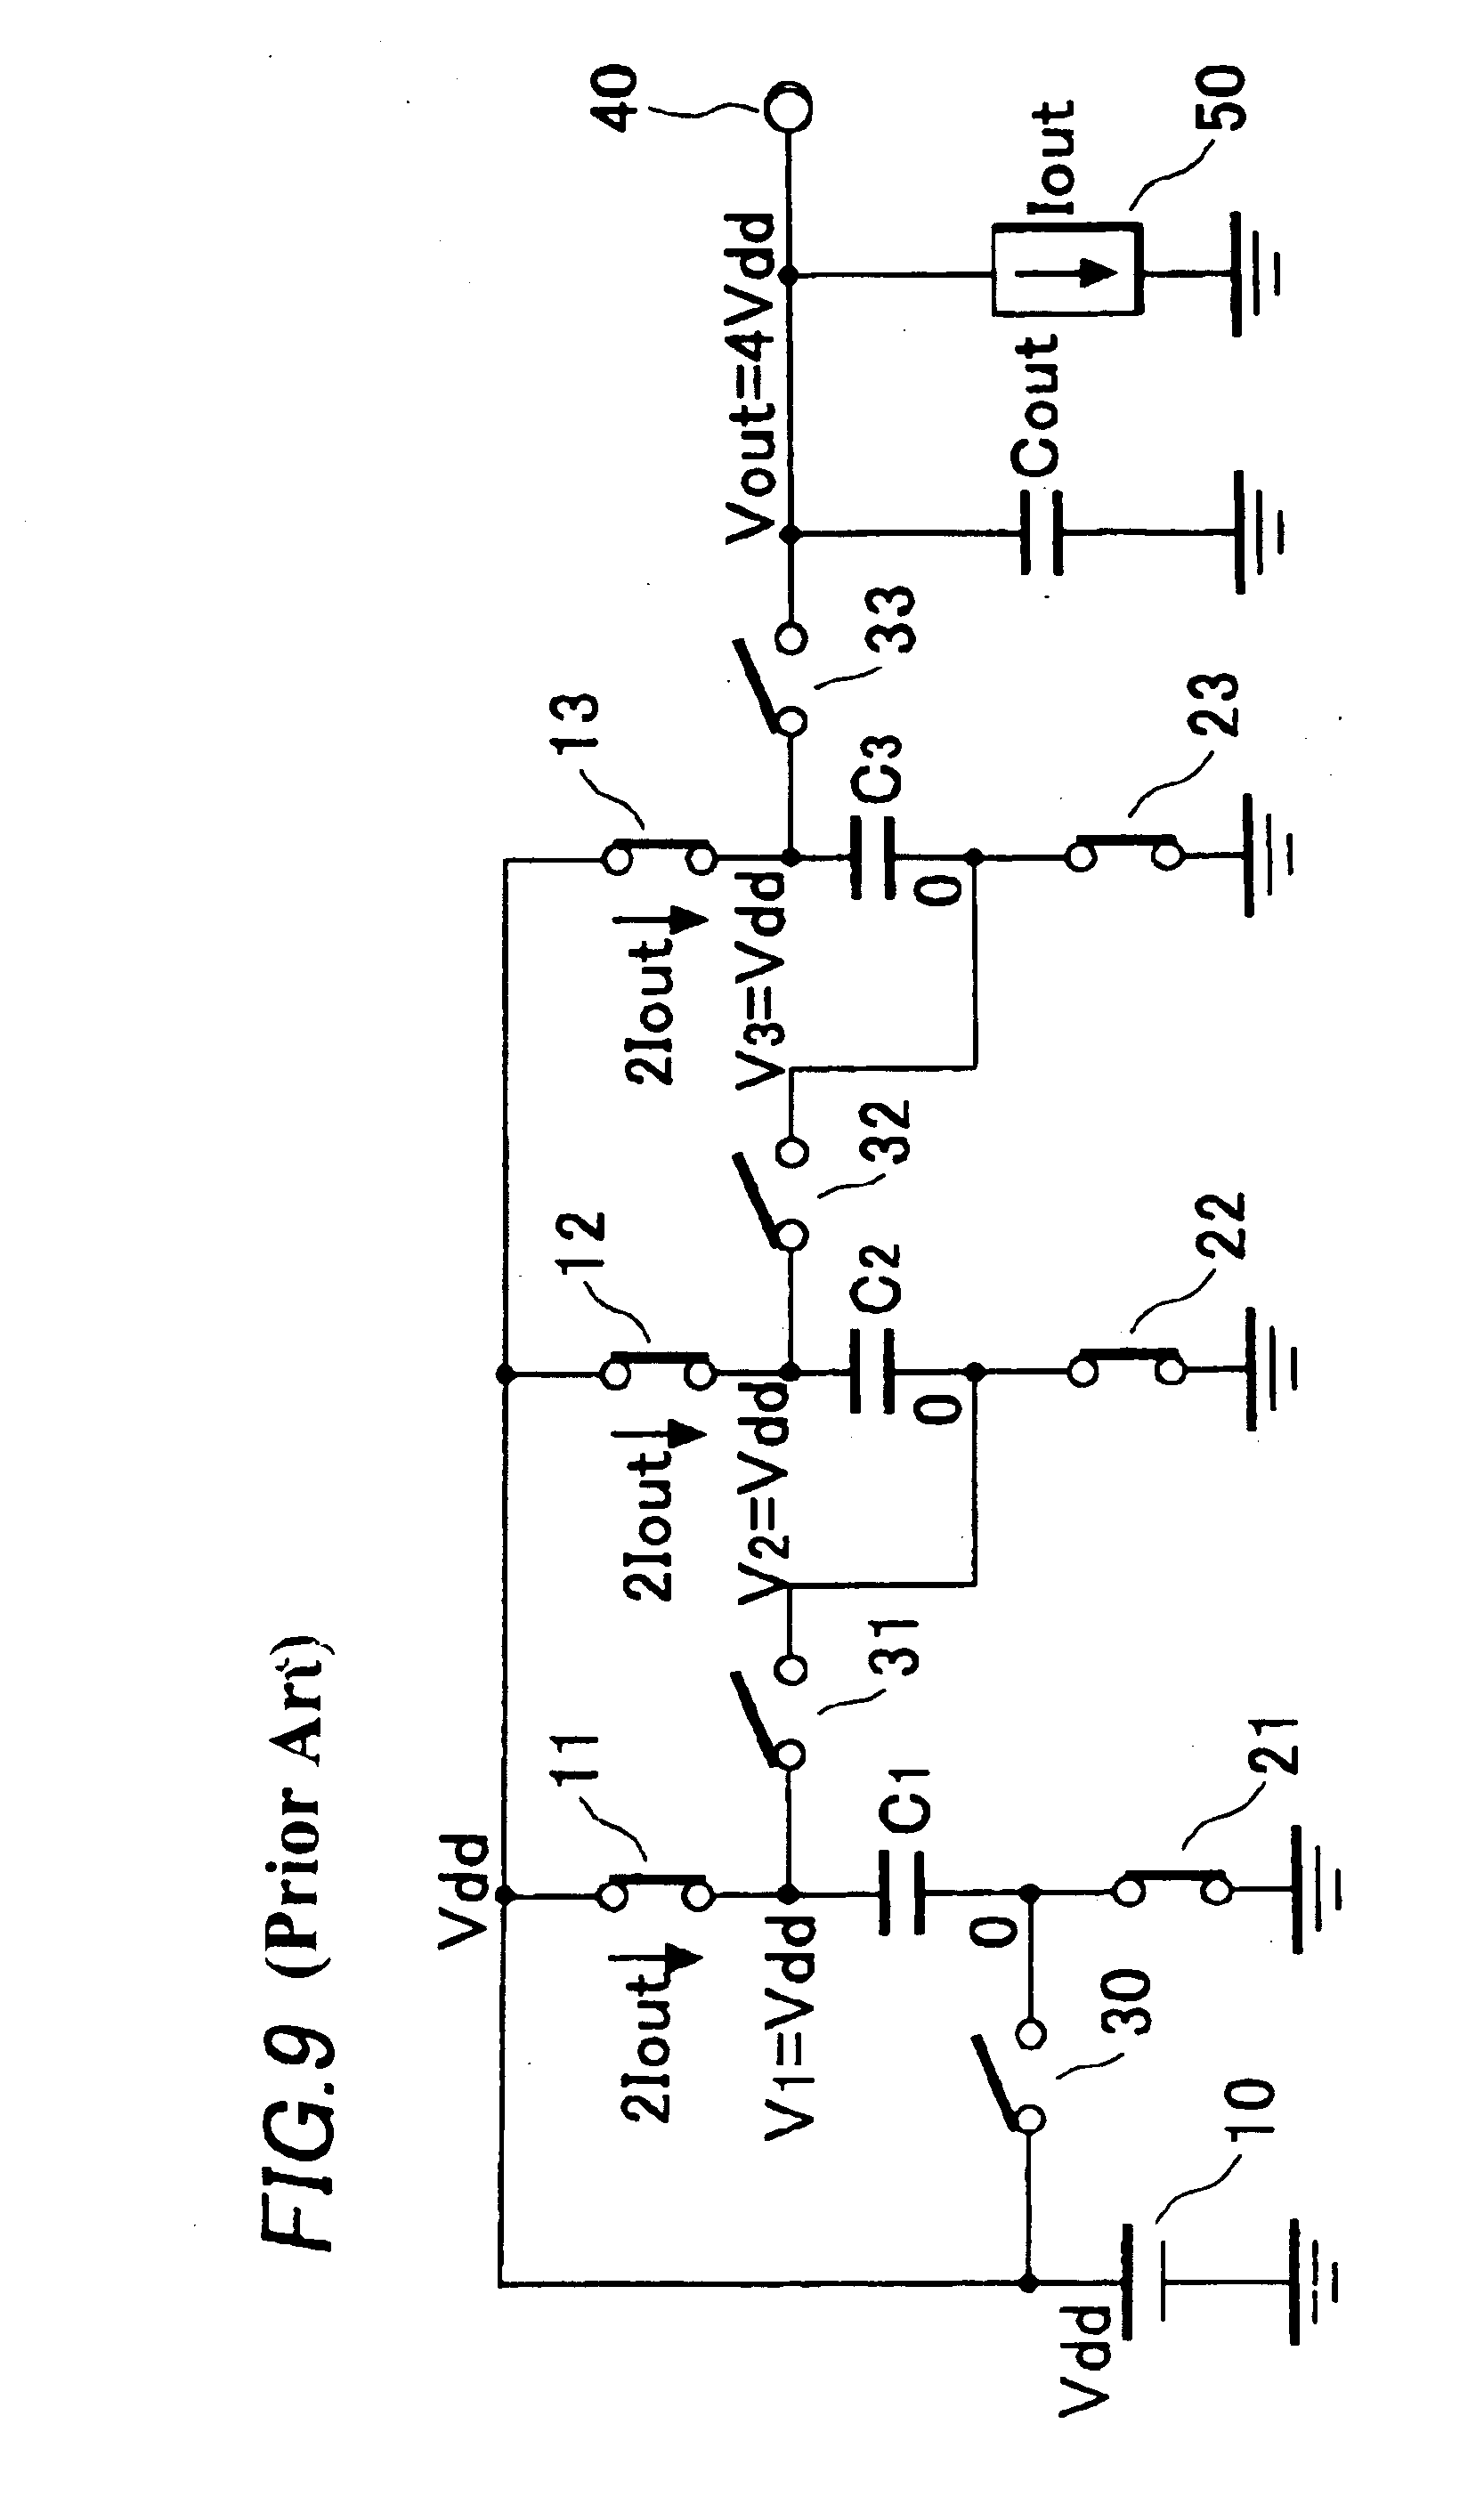 connect two capacitors in series